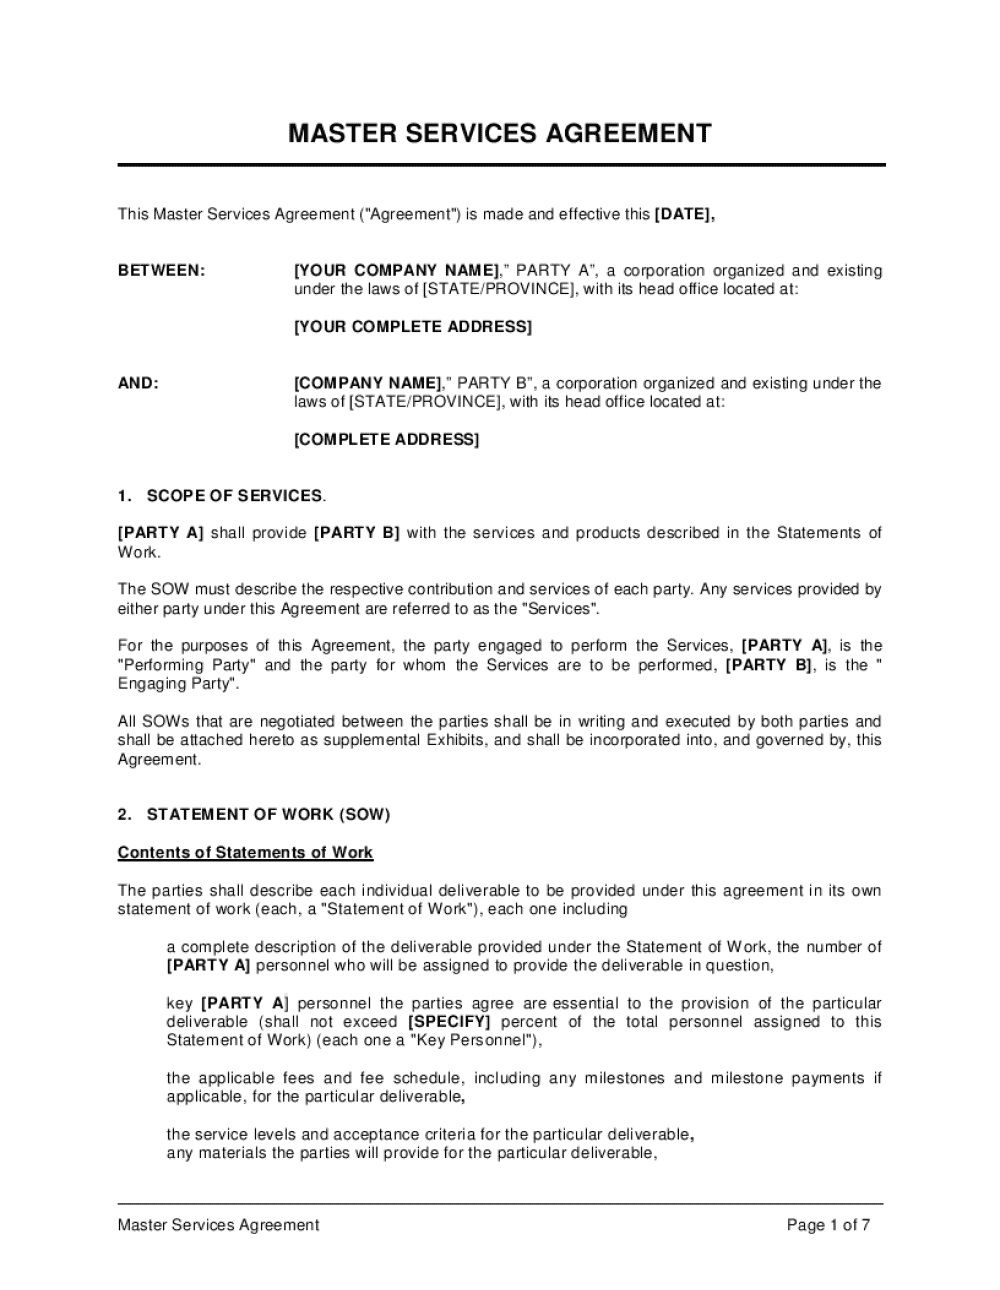 005 Excellent Master Service Agreement Template Image  Free AustraliaFull